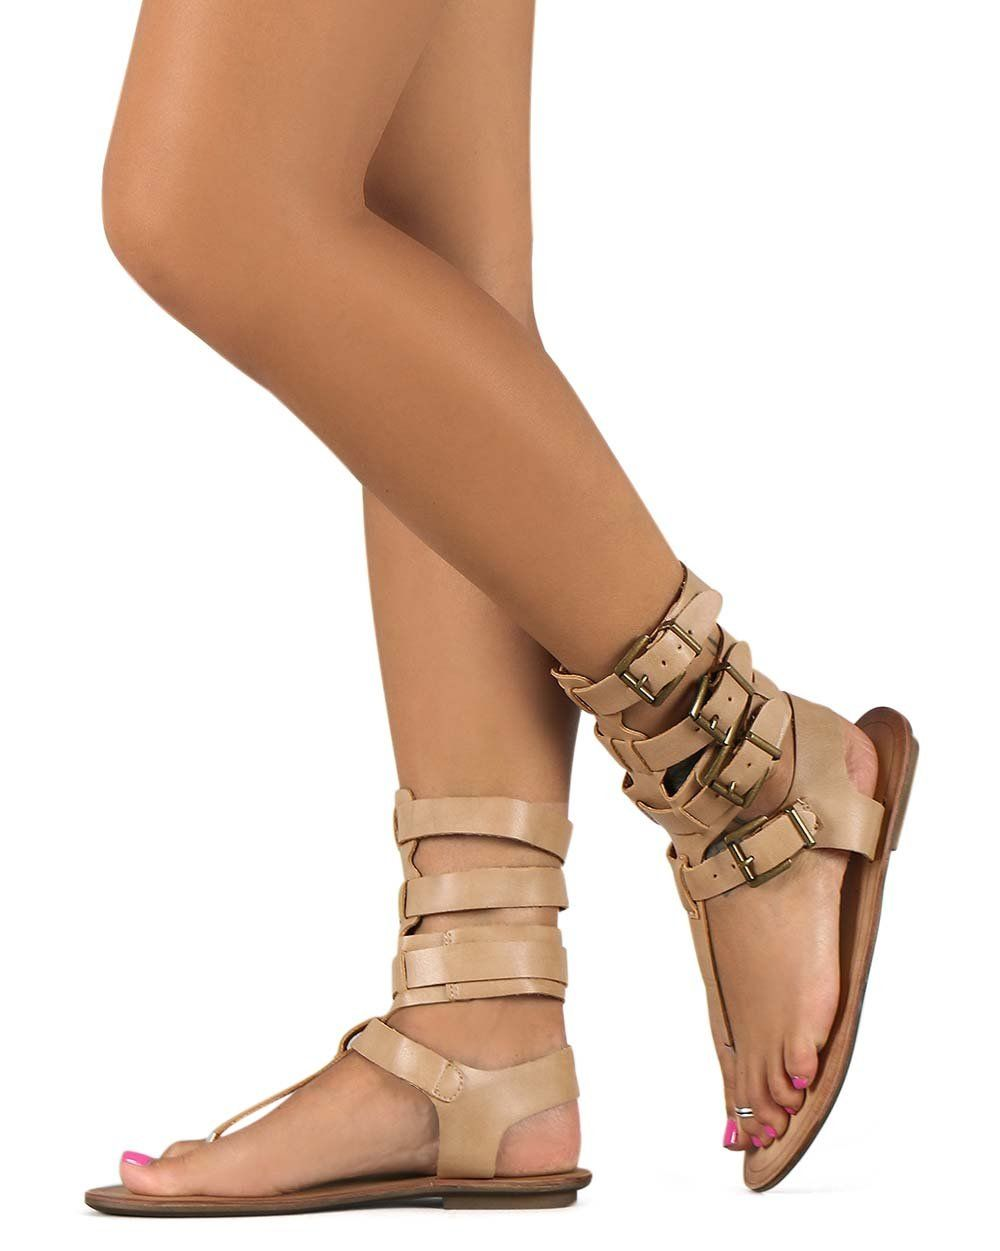 c039e22508a9 Liliana DB52 Women Leatherette Strappy T-Strap Gladiator Thong Sandal -  Nude (Size  6.5). Measurement (tested sz 6  approx.)  Heel 0.25